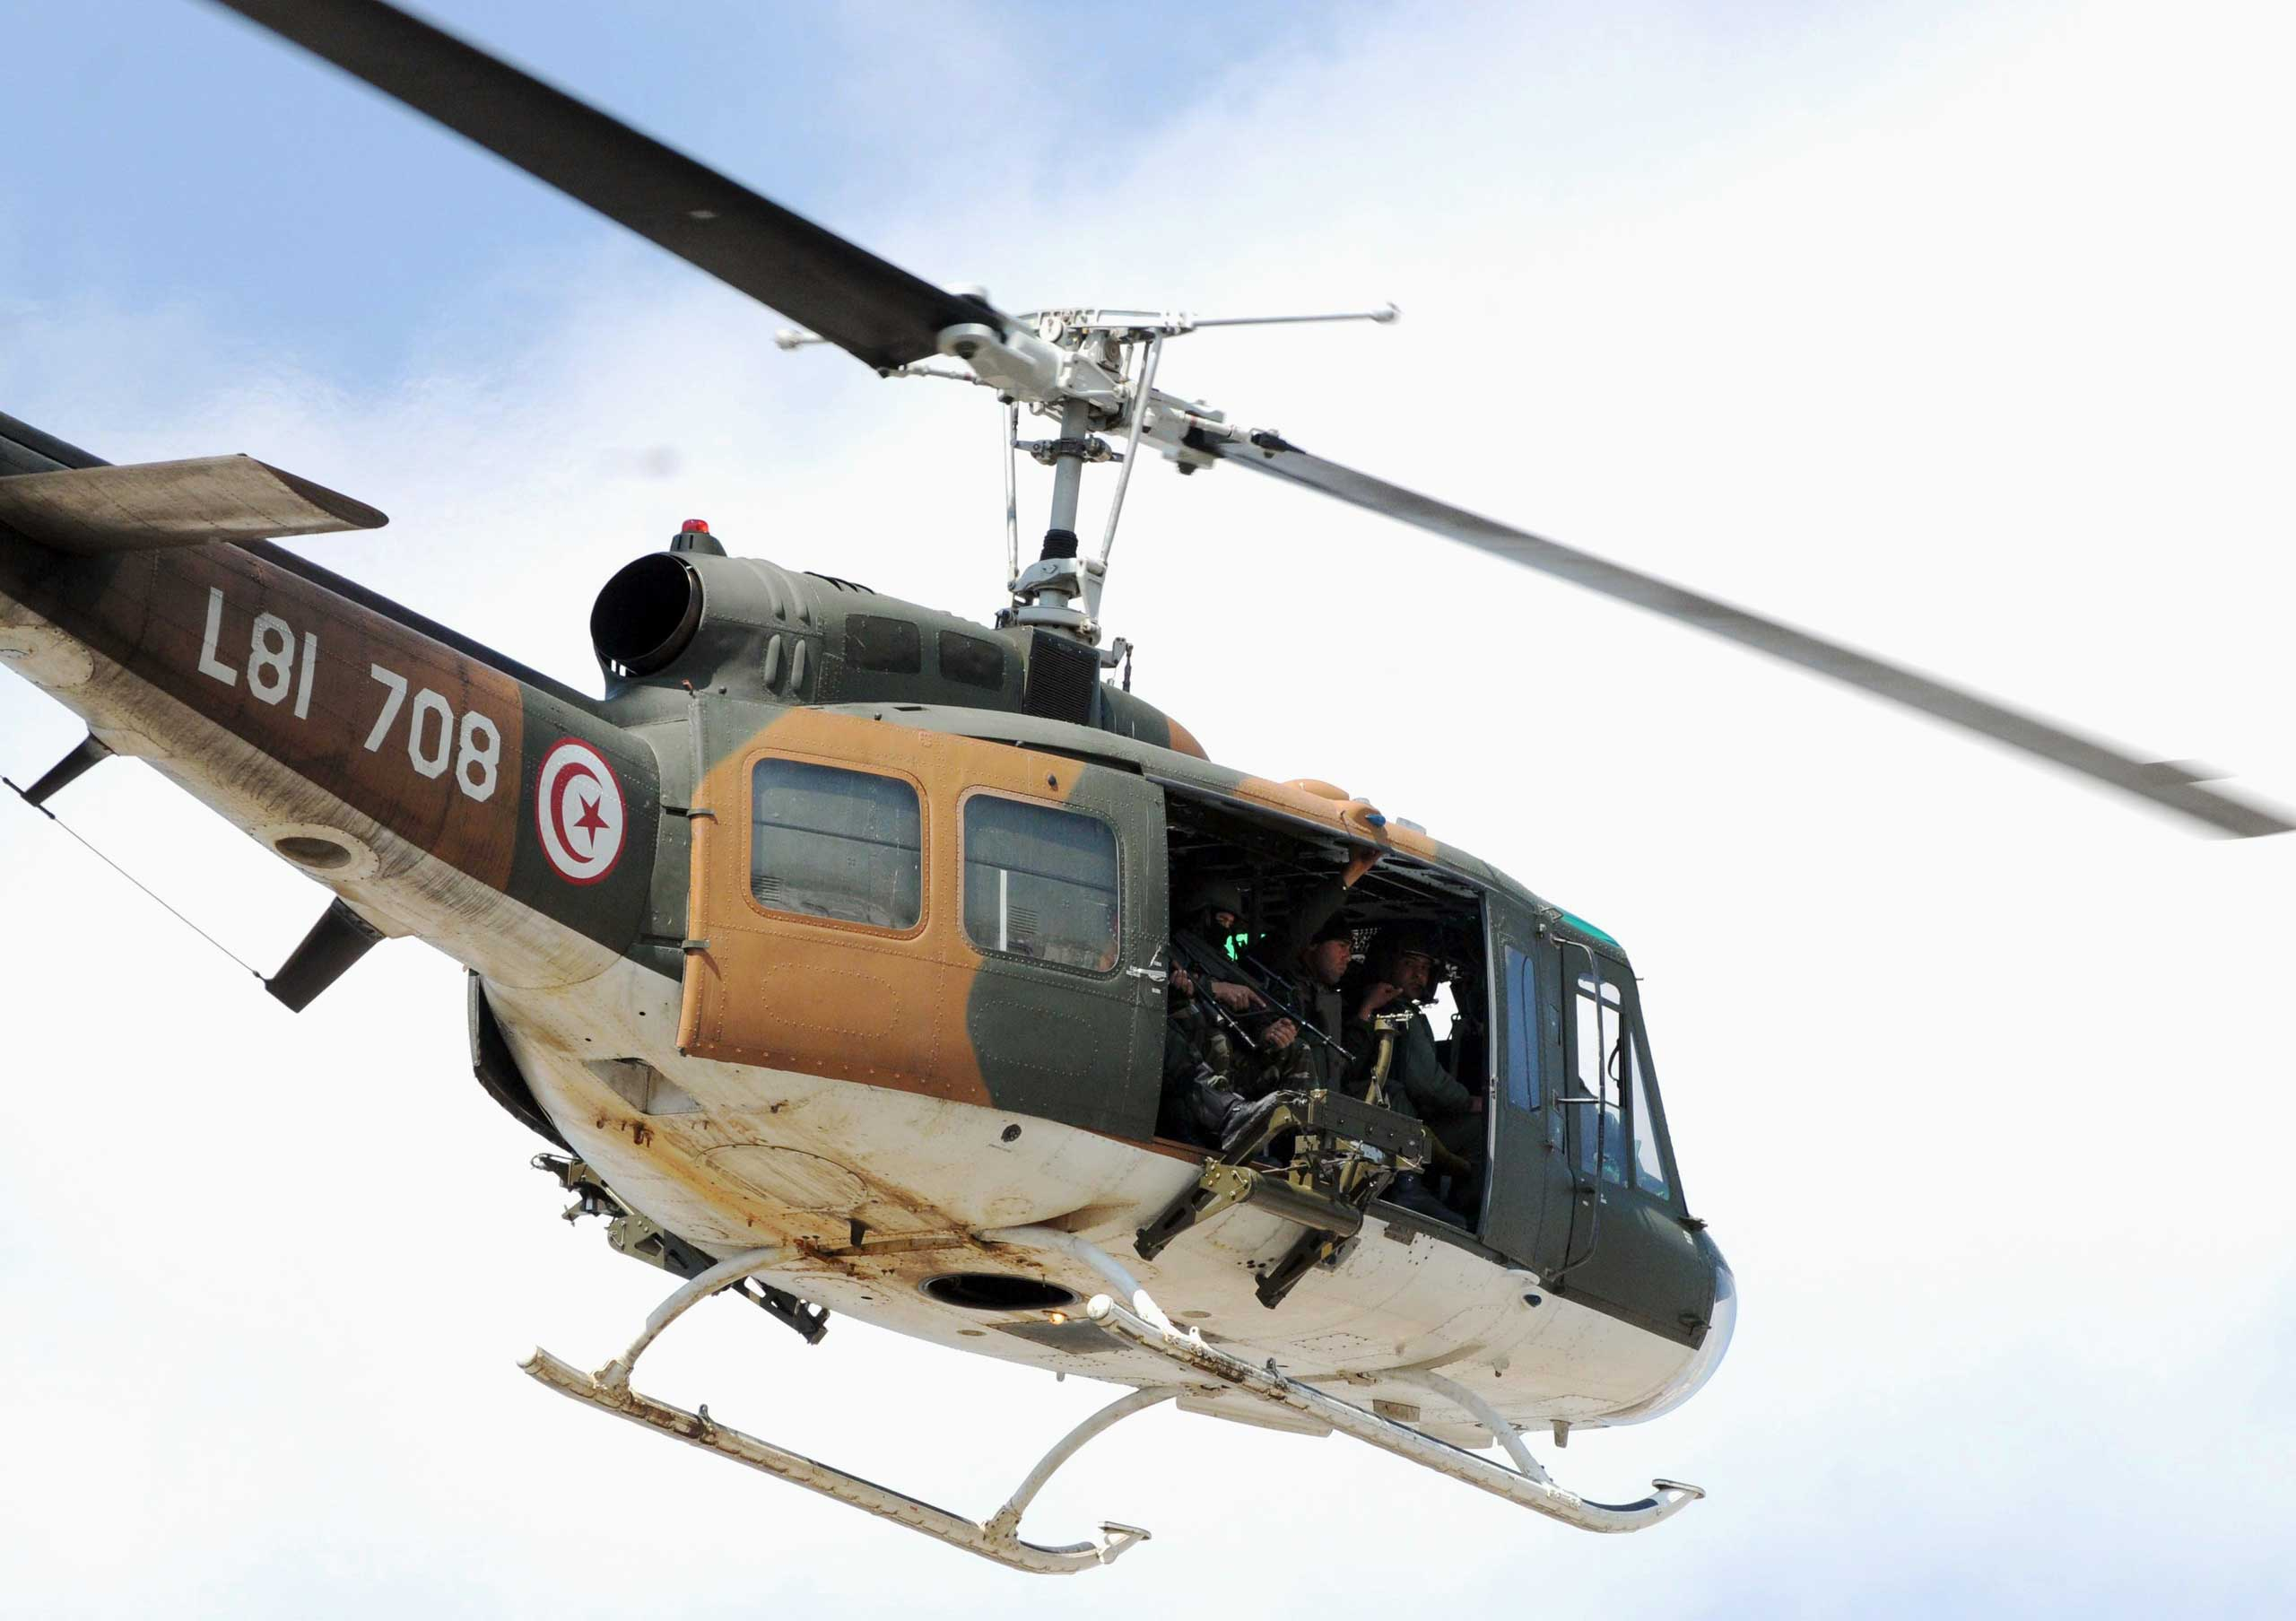 A Tunisian security force helicopter flies over the site of an attack carried out by two gunmen at the Bardo Museum in Tunis on March 18, 2015.